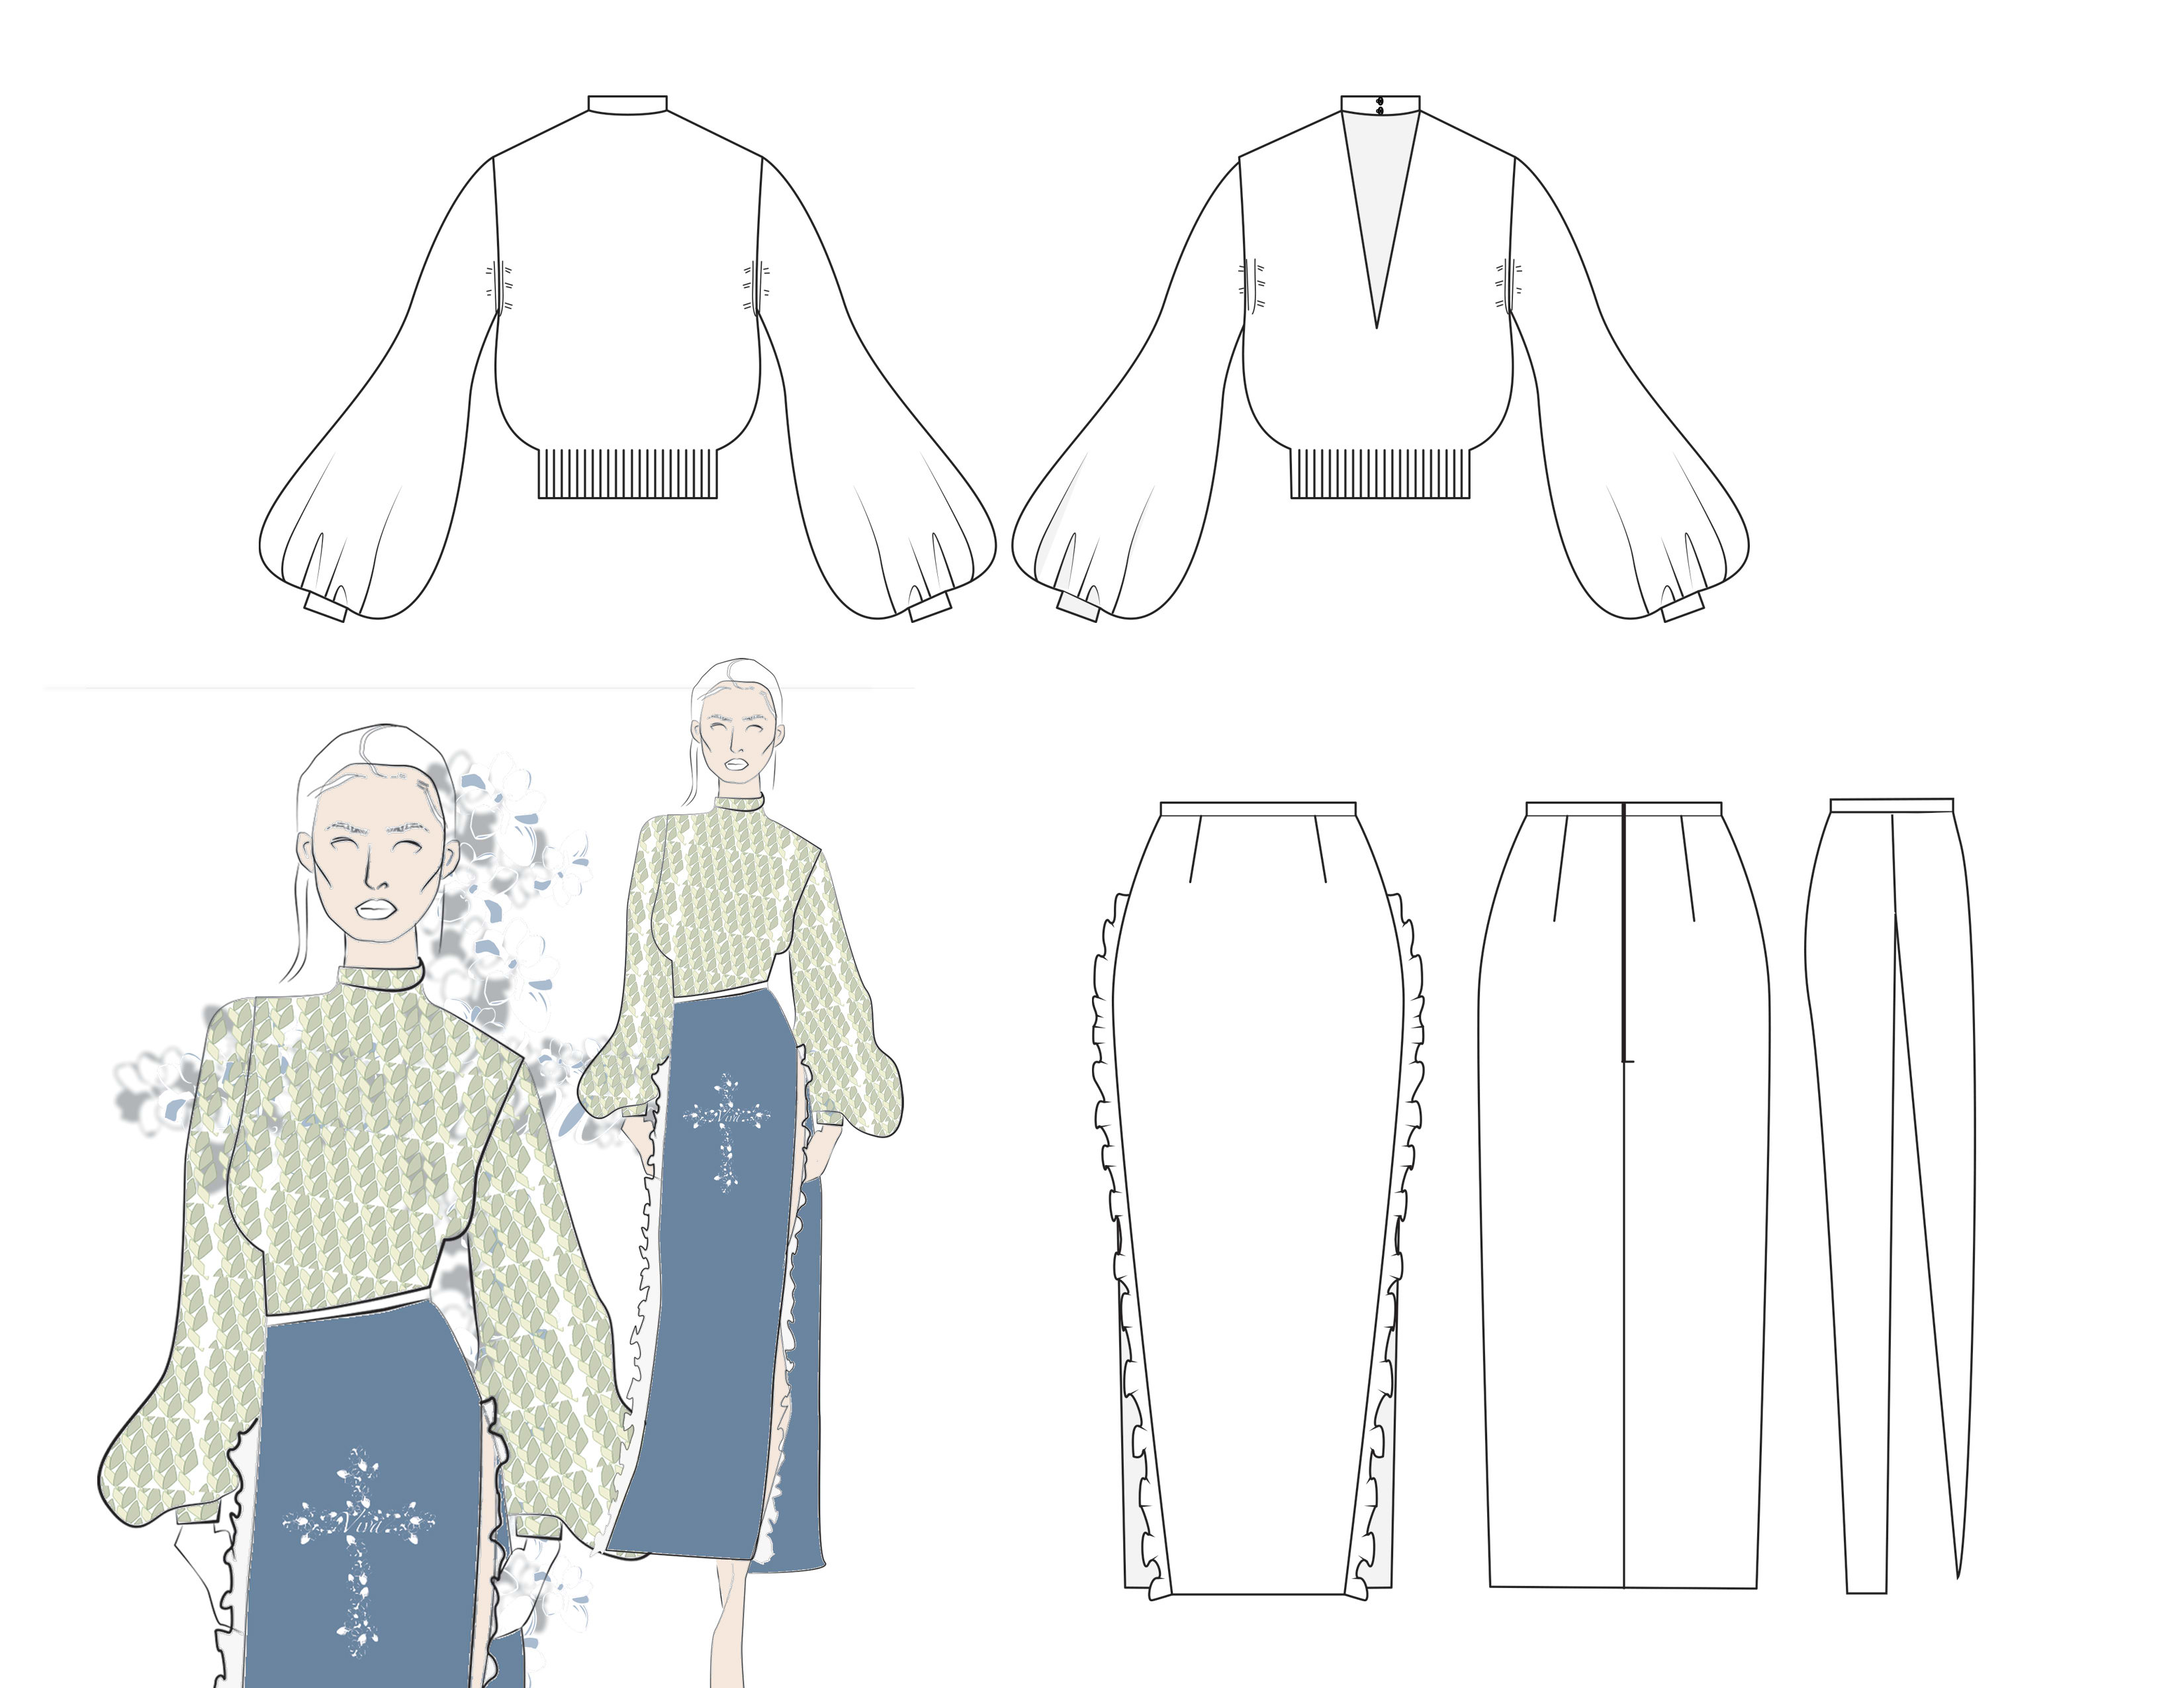 Technical drawing or flat sketch by Anafranc